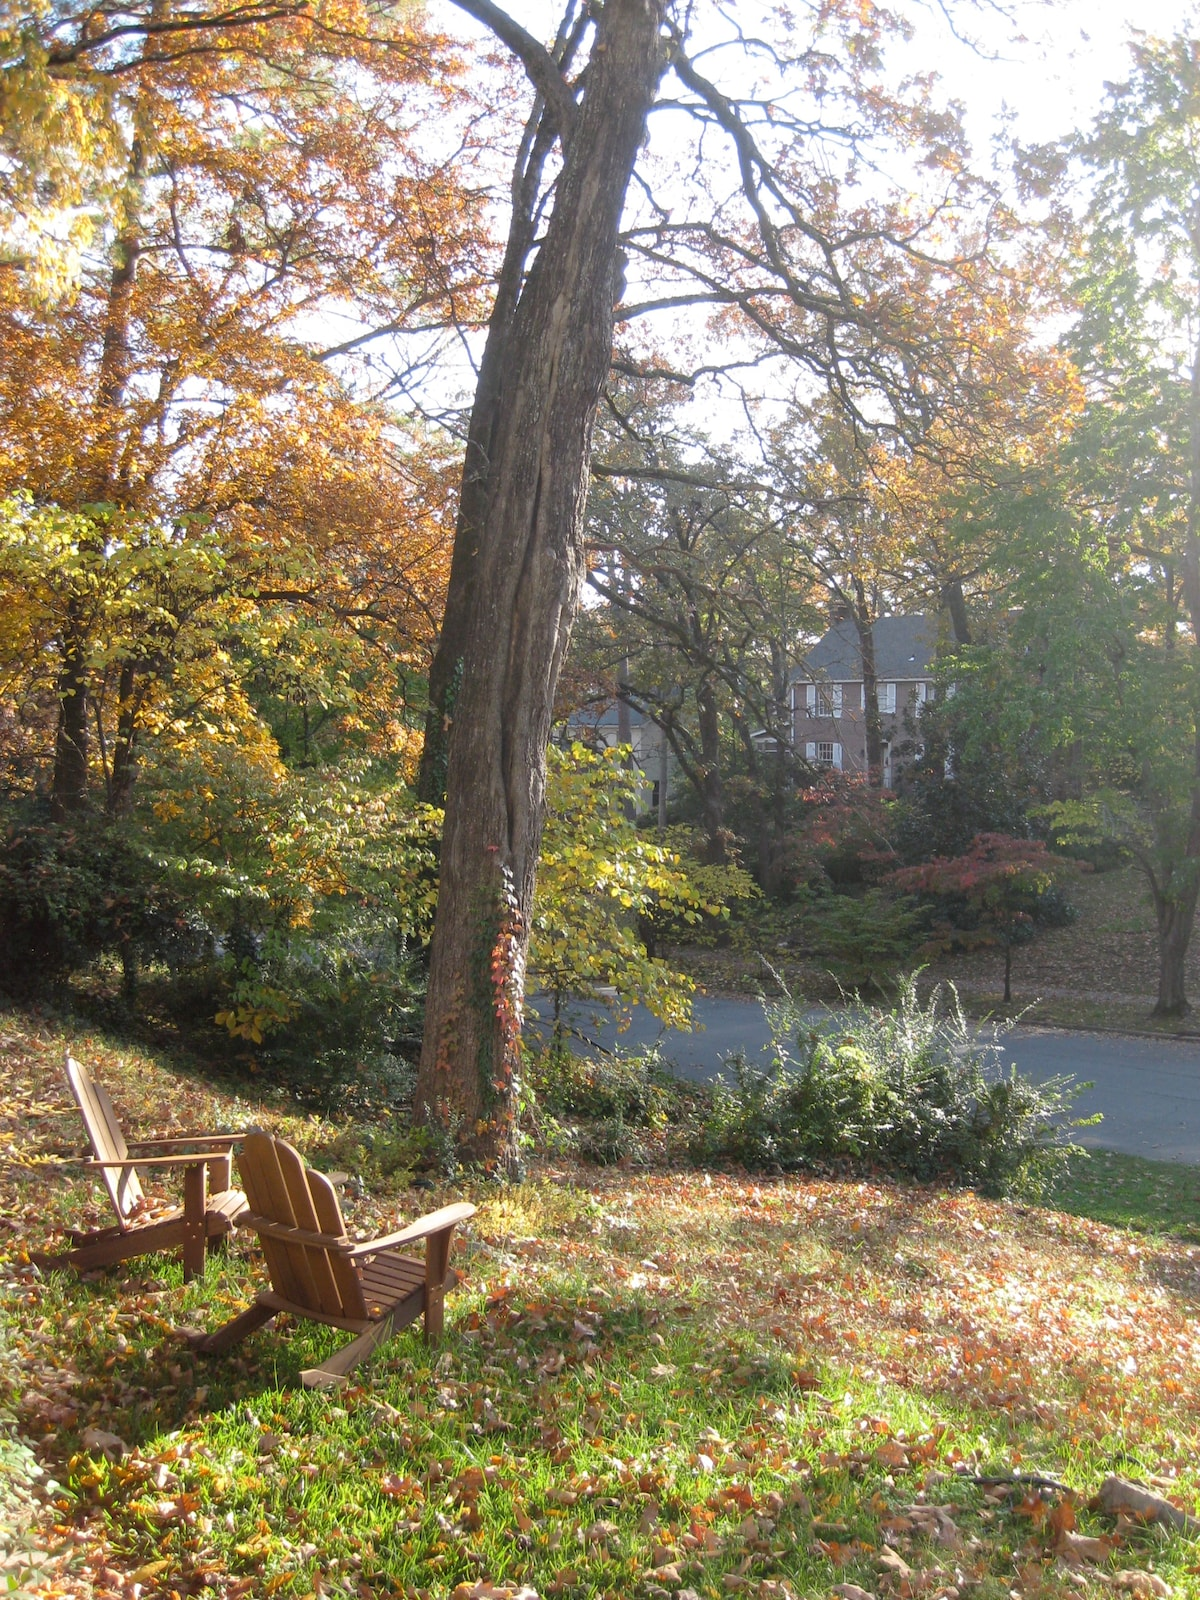 Enjoy the Adirondack chairs in the front yard...